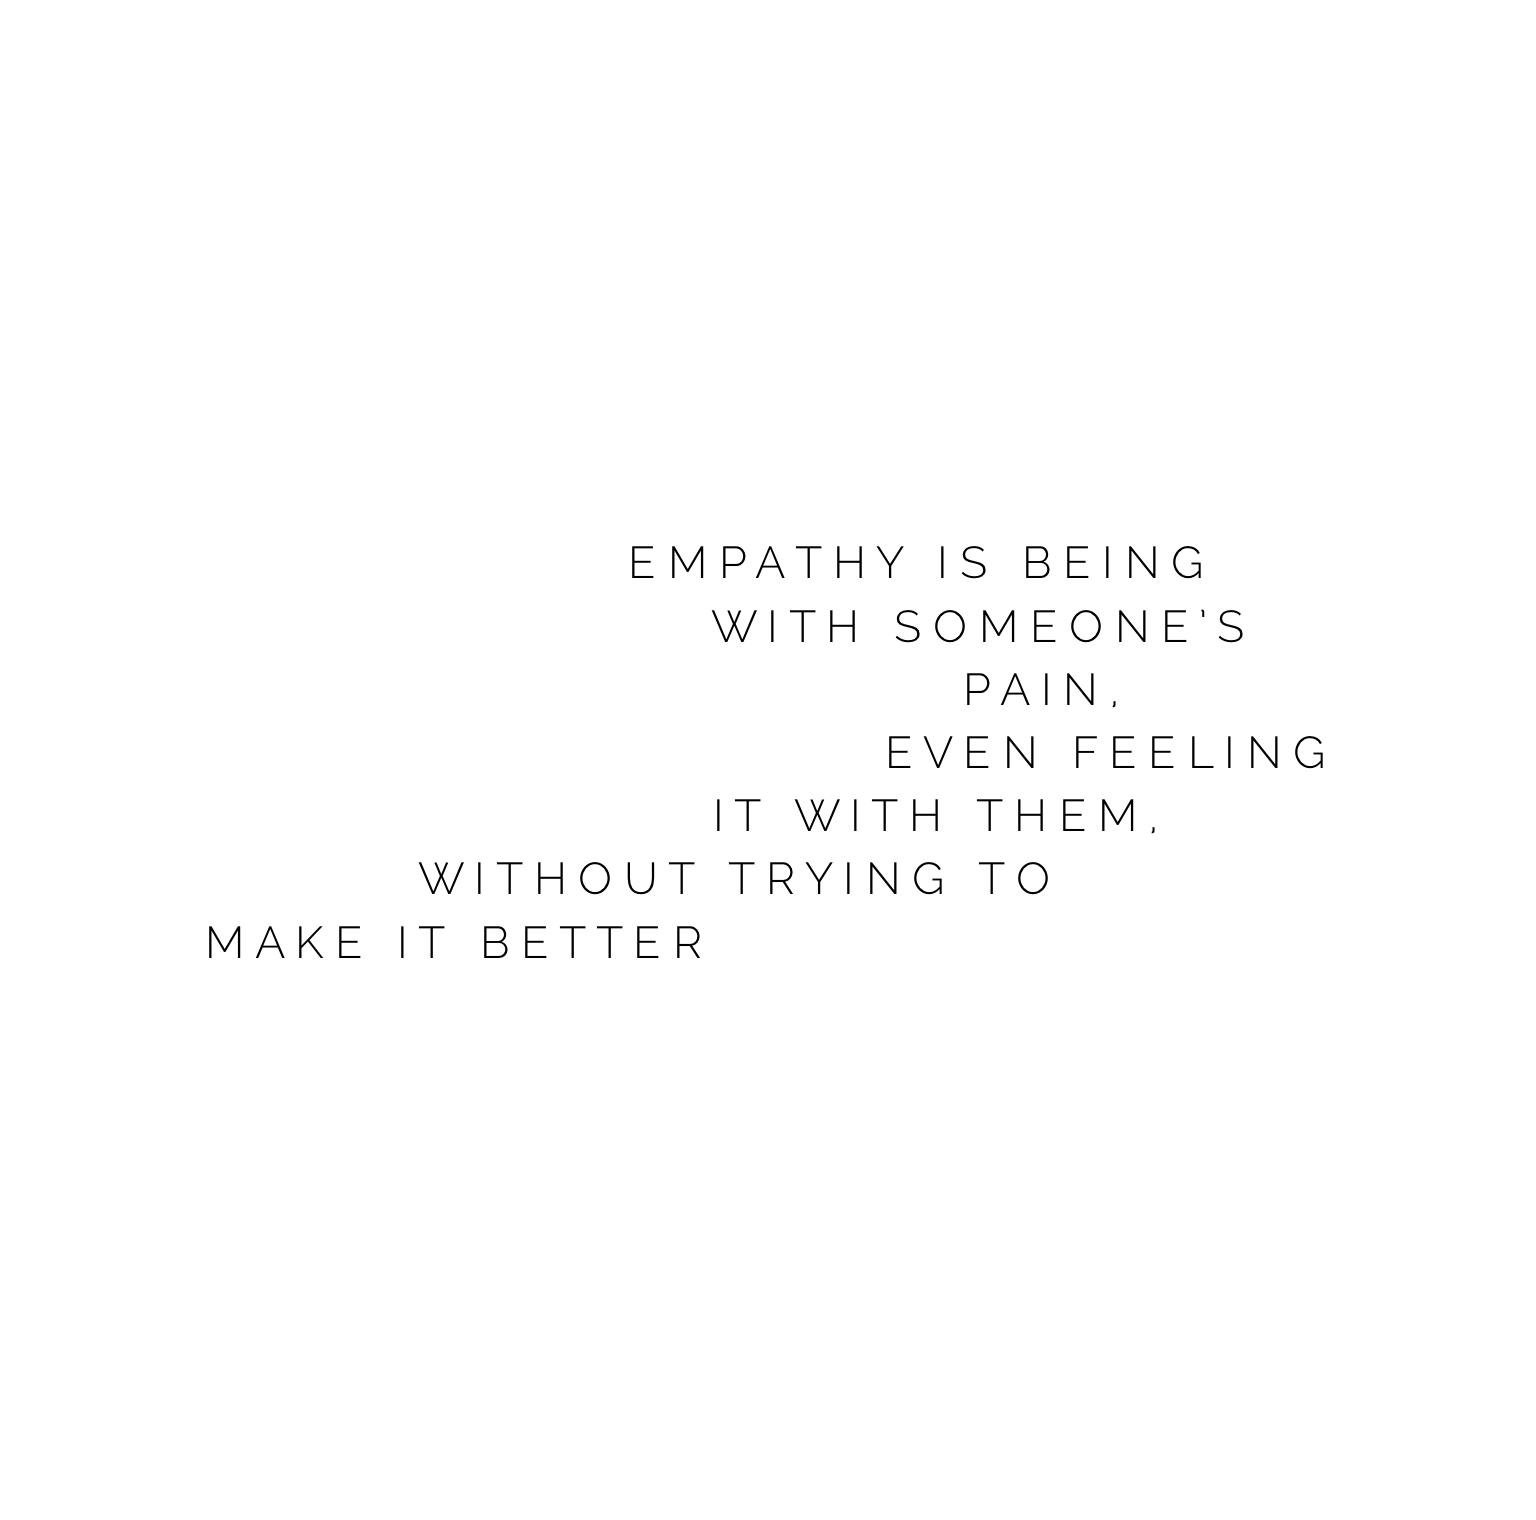 Grateful for those who listen with empathy 🙏